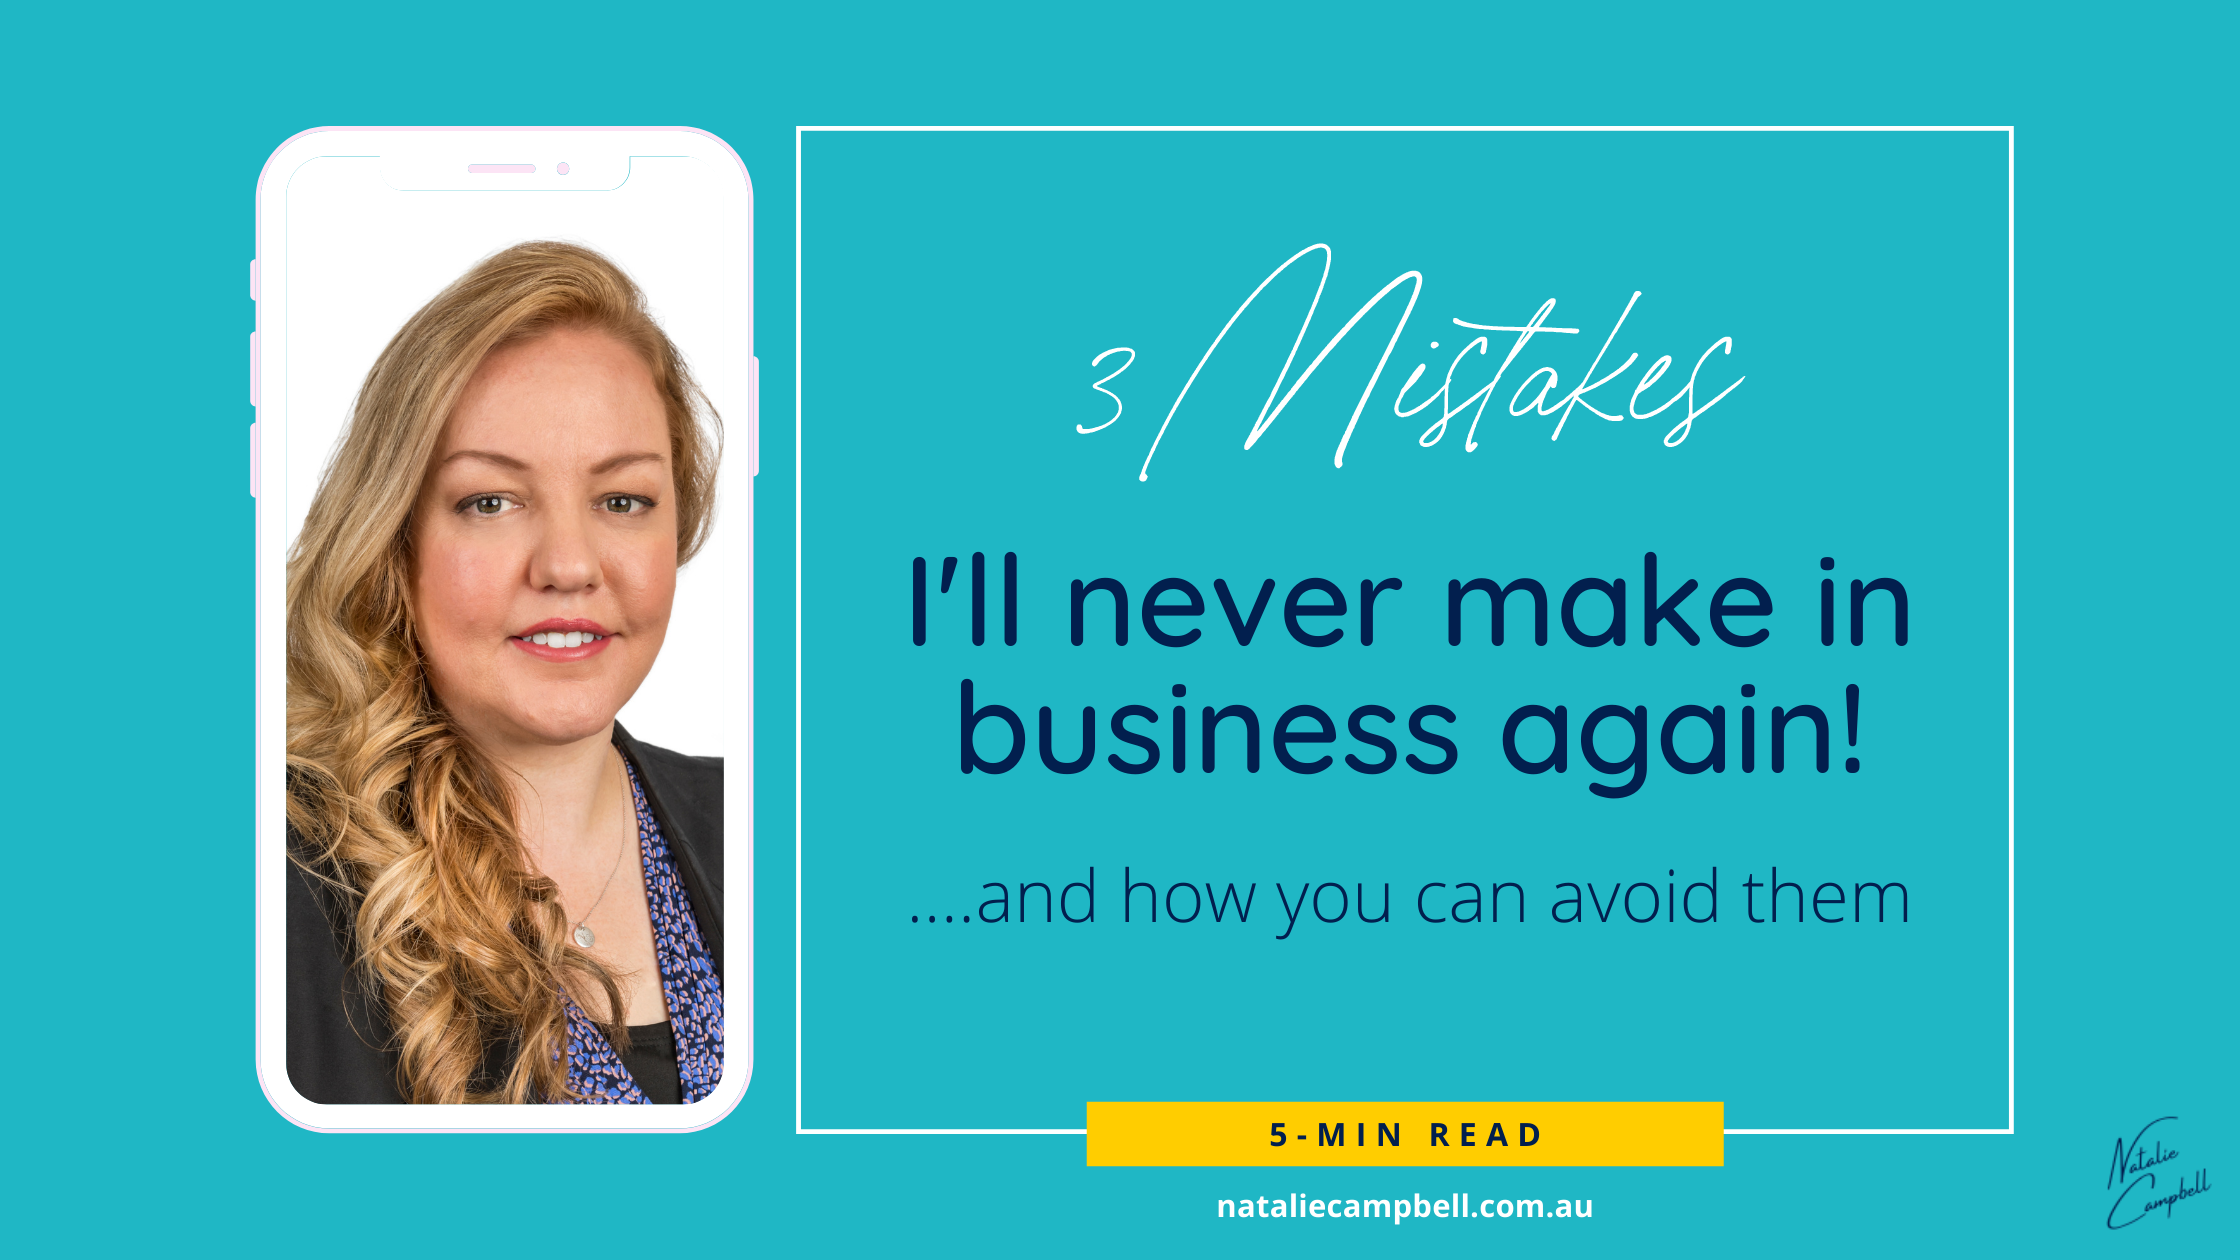 Blog Banner - 3 Mistakes in Business